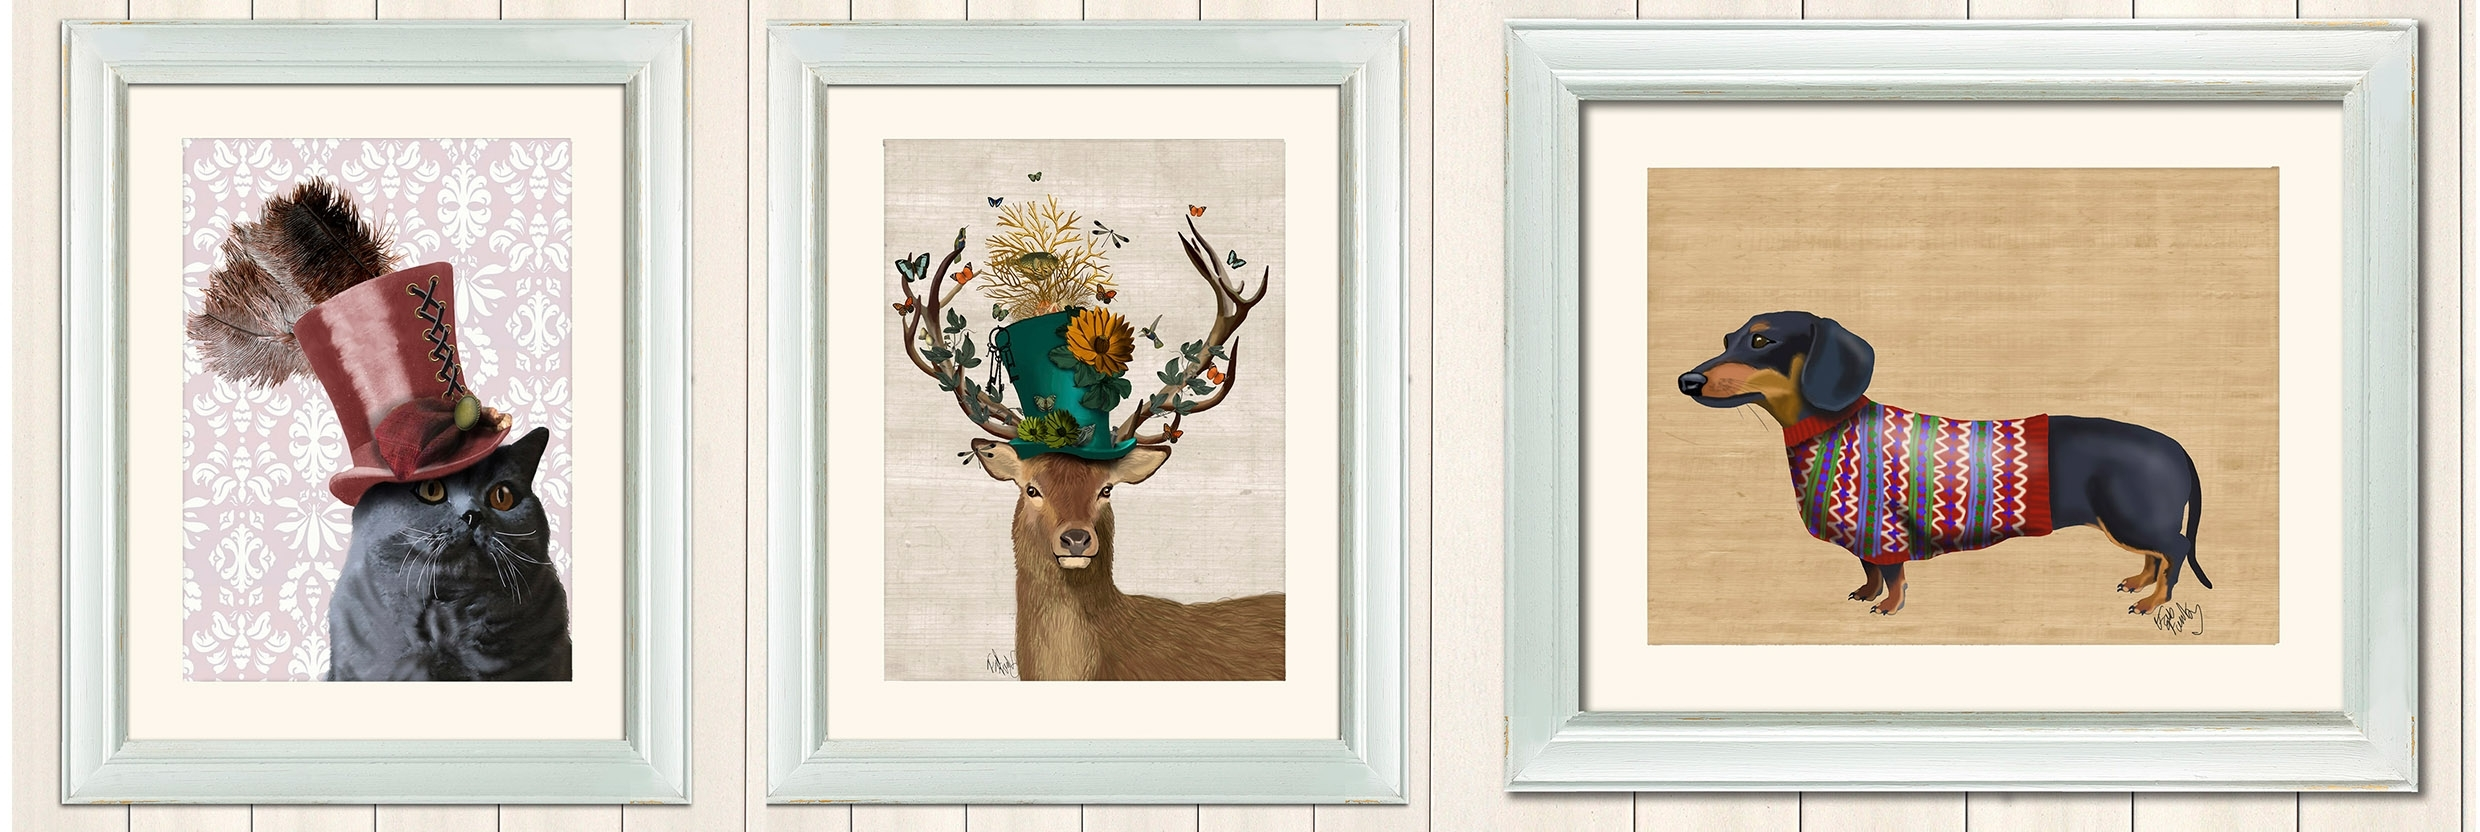 Fab Funky Art Prints From Achica | Bright Group International With Regard To 2017 Funky Art Framed Prints (View 3 of 15)